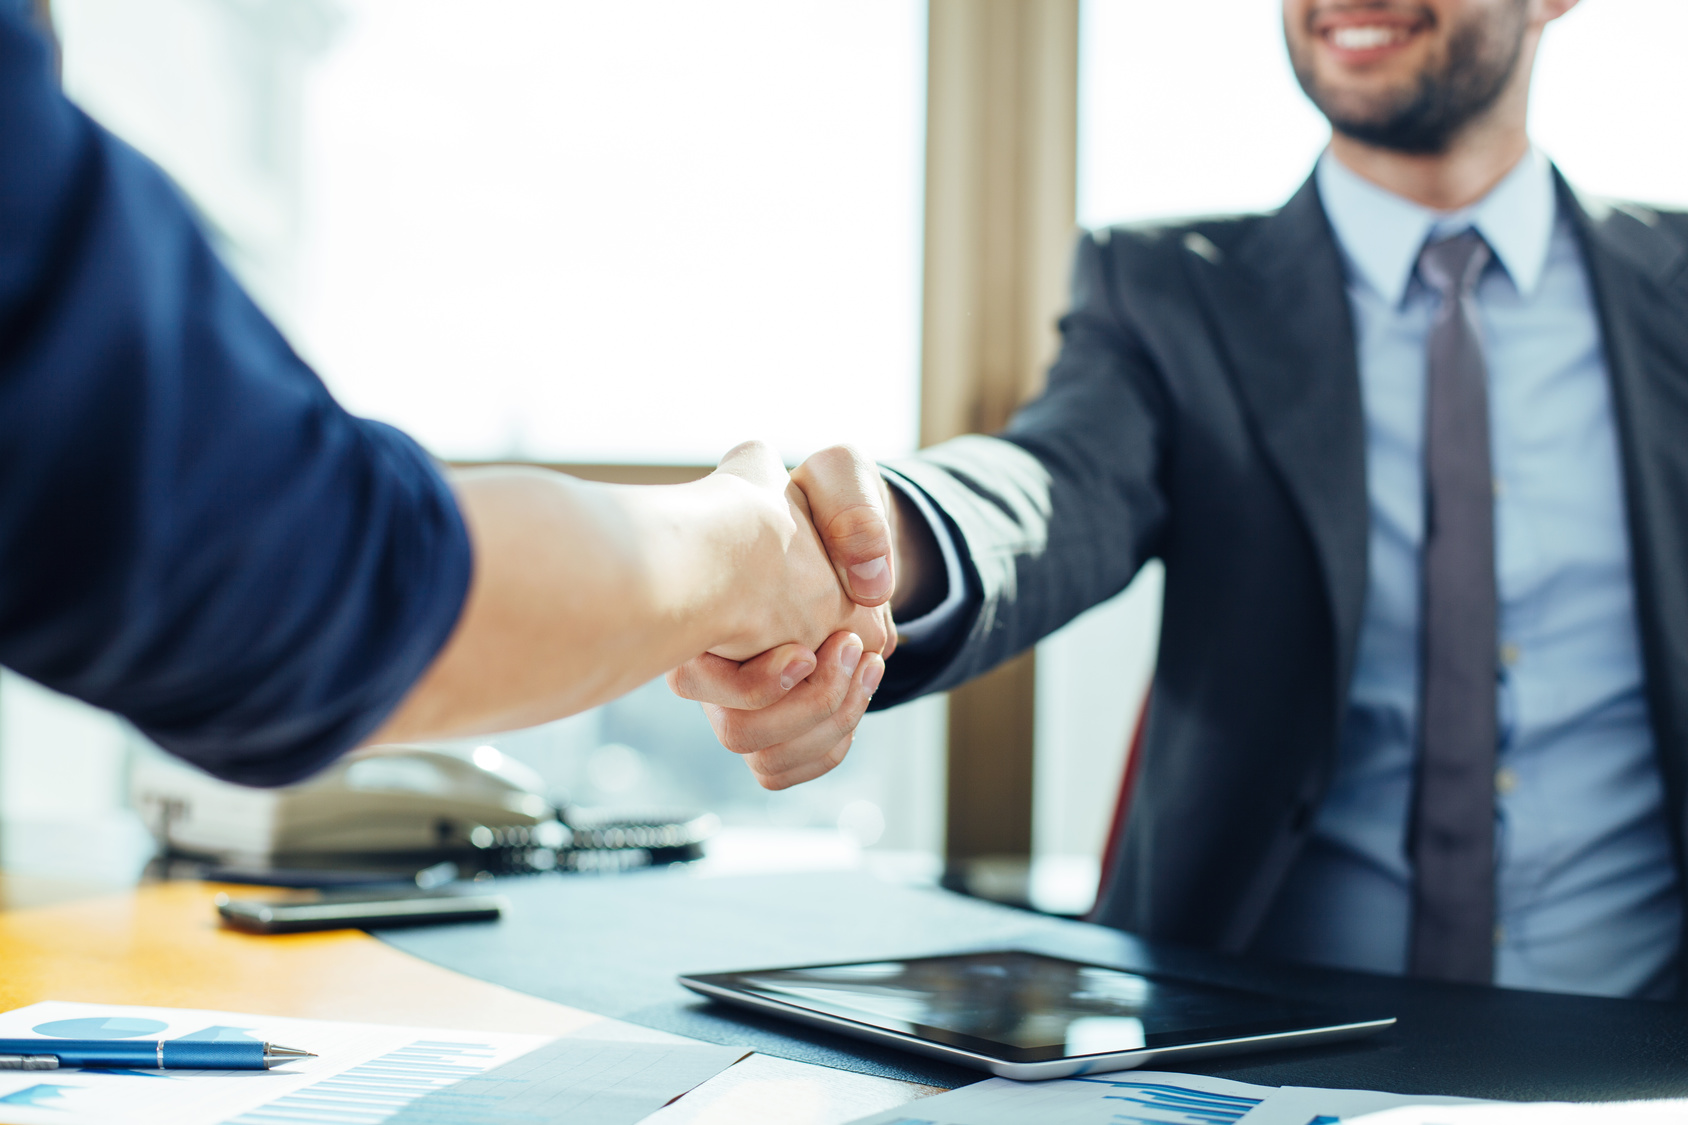 bartering services your business a skill to start learning close up of business handshake in the office